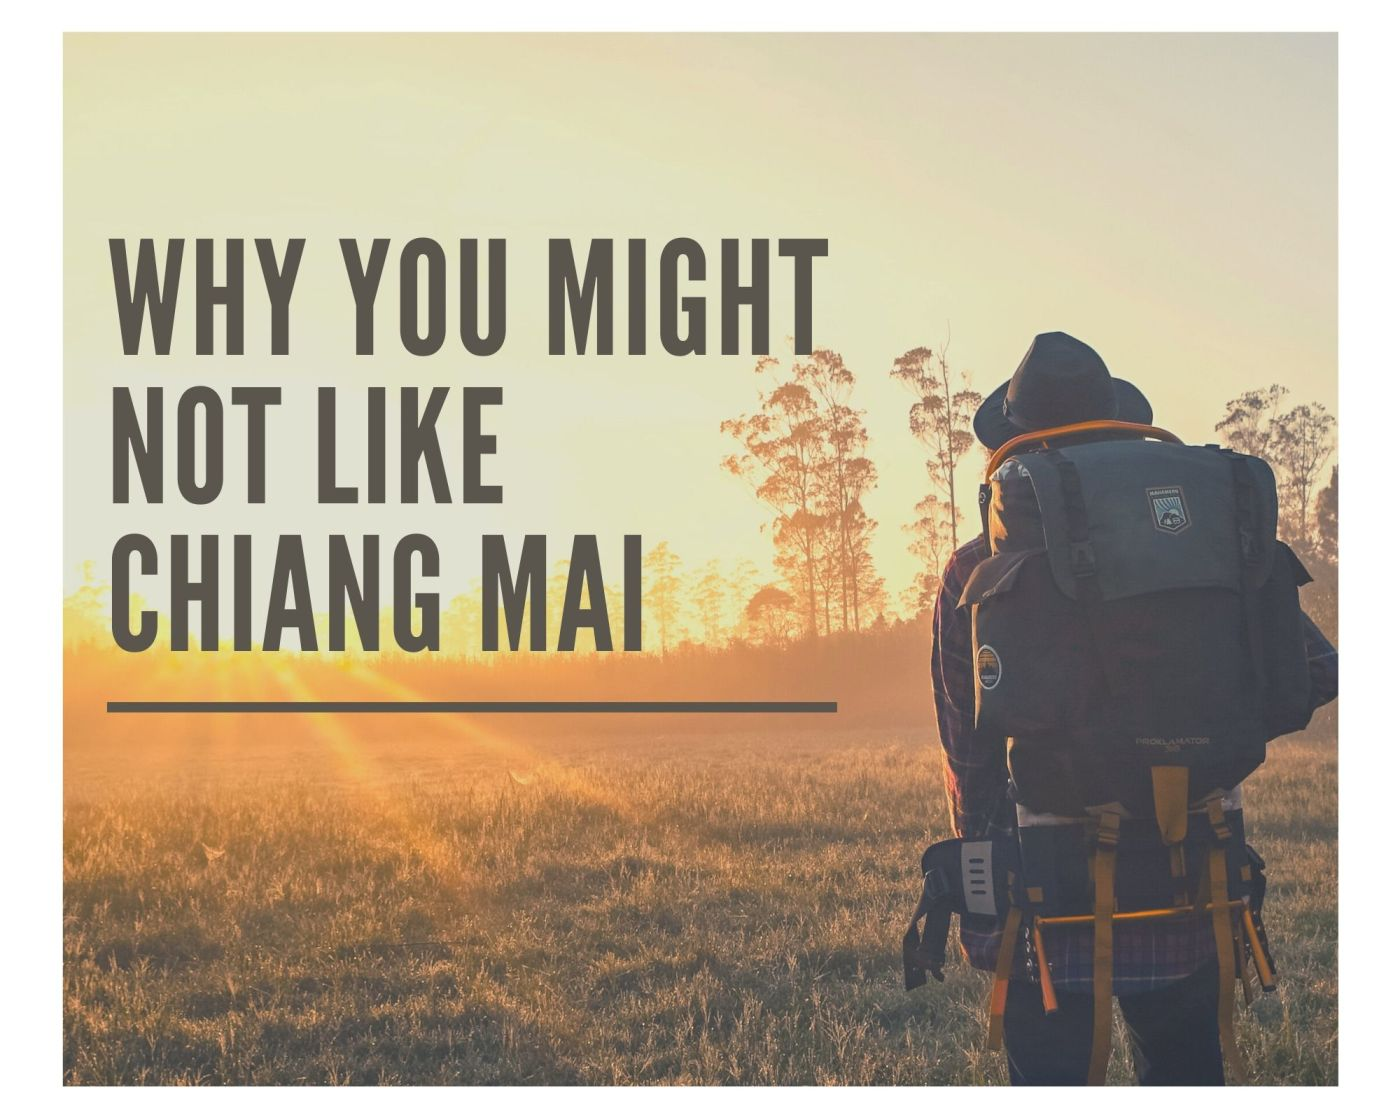 why you might not like chiang mai